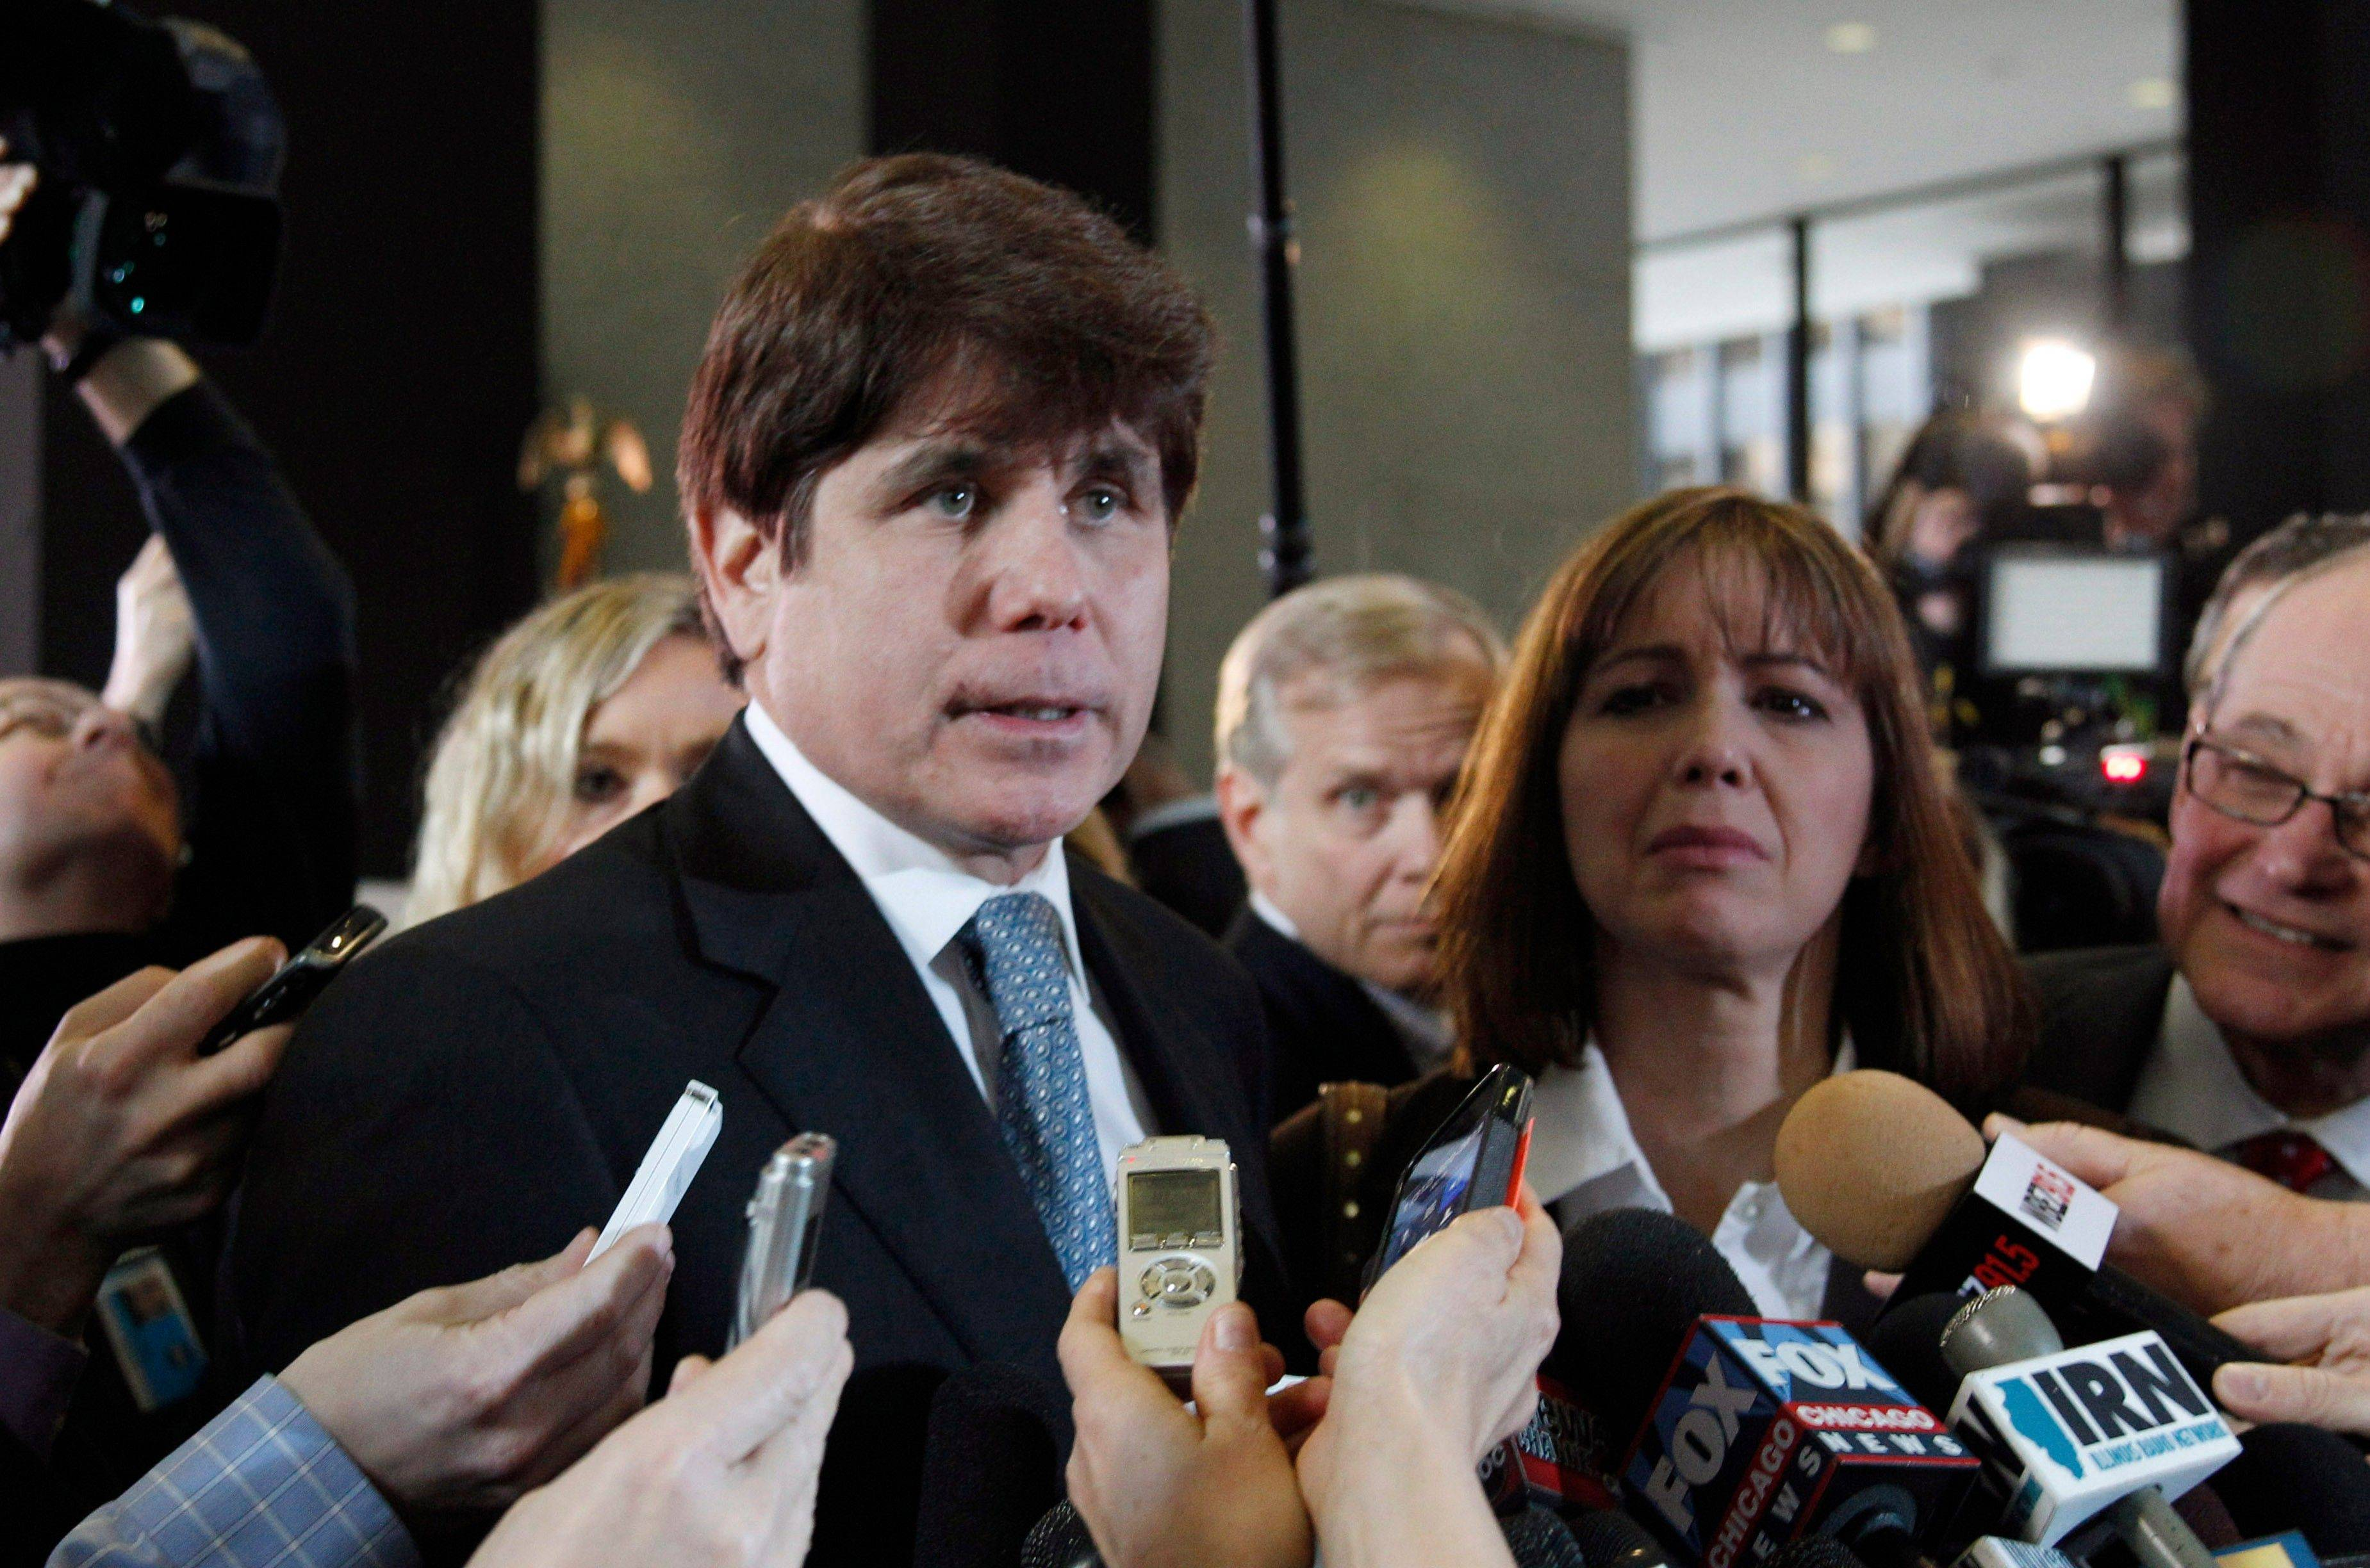 Former Gov. Rod Blagojevich speaks to reporters at the federal building in Chicago on Dec. 7 after being sentenced for 14 years on 18 corruption counts.